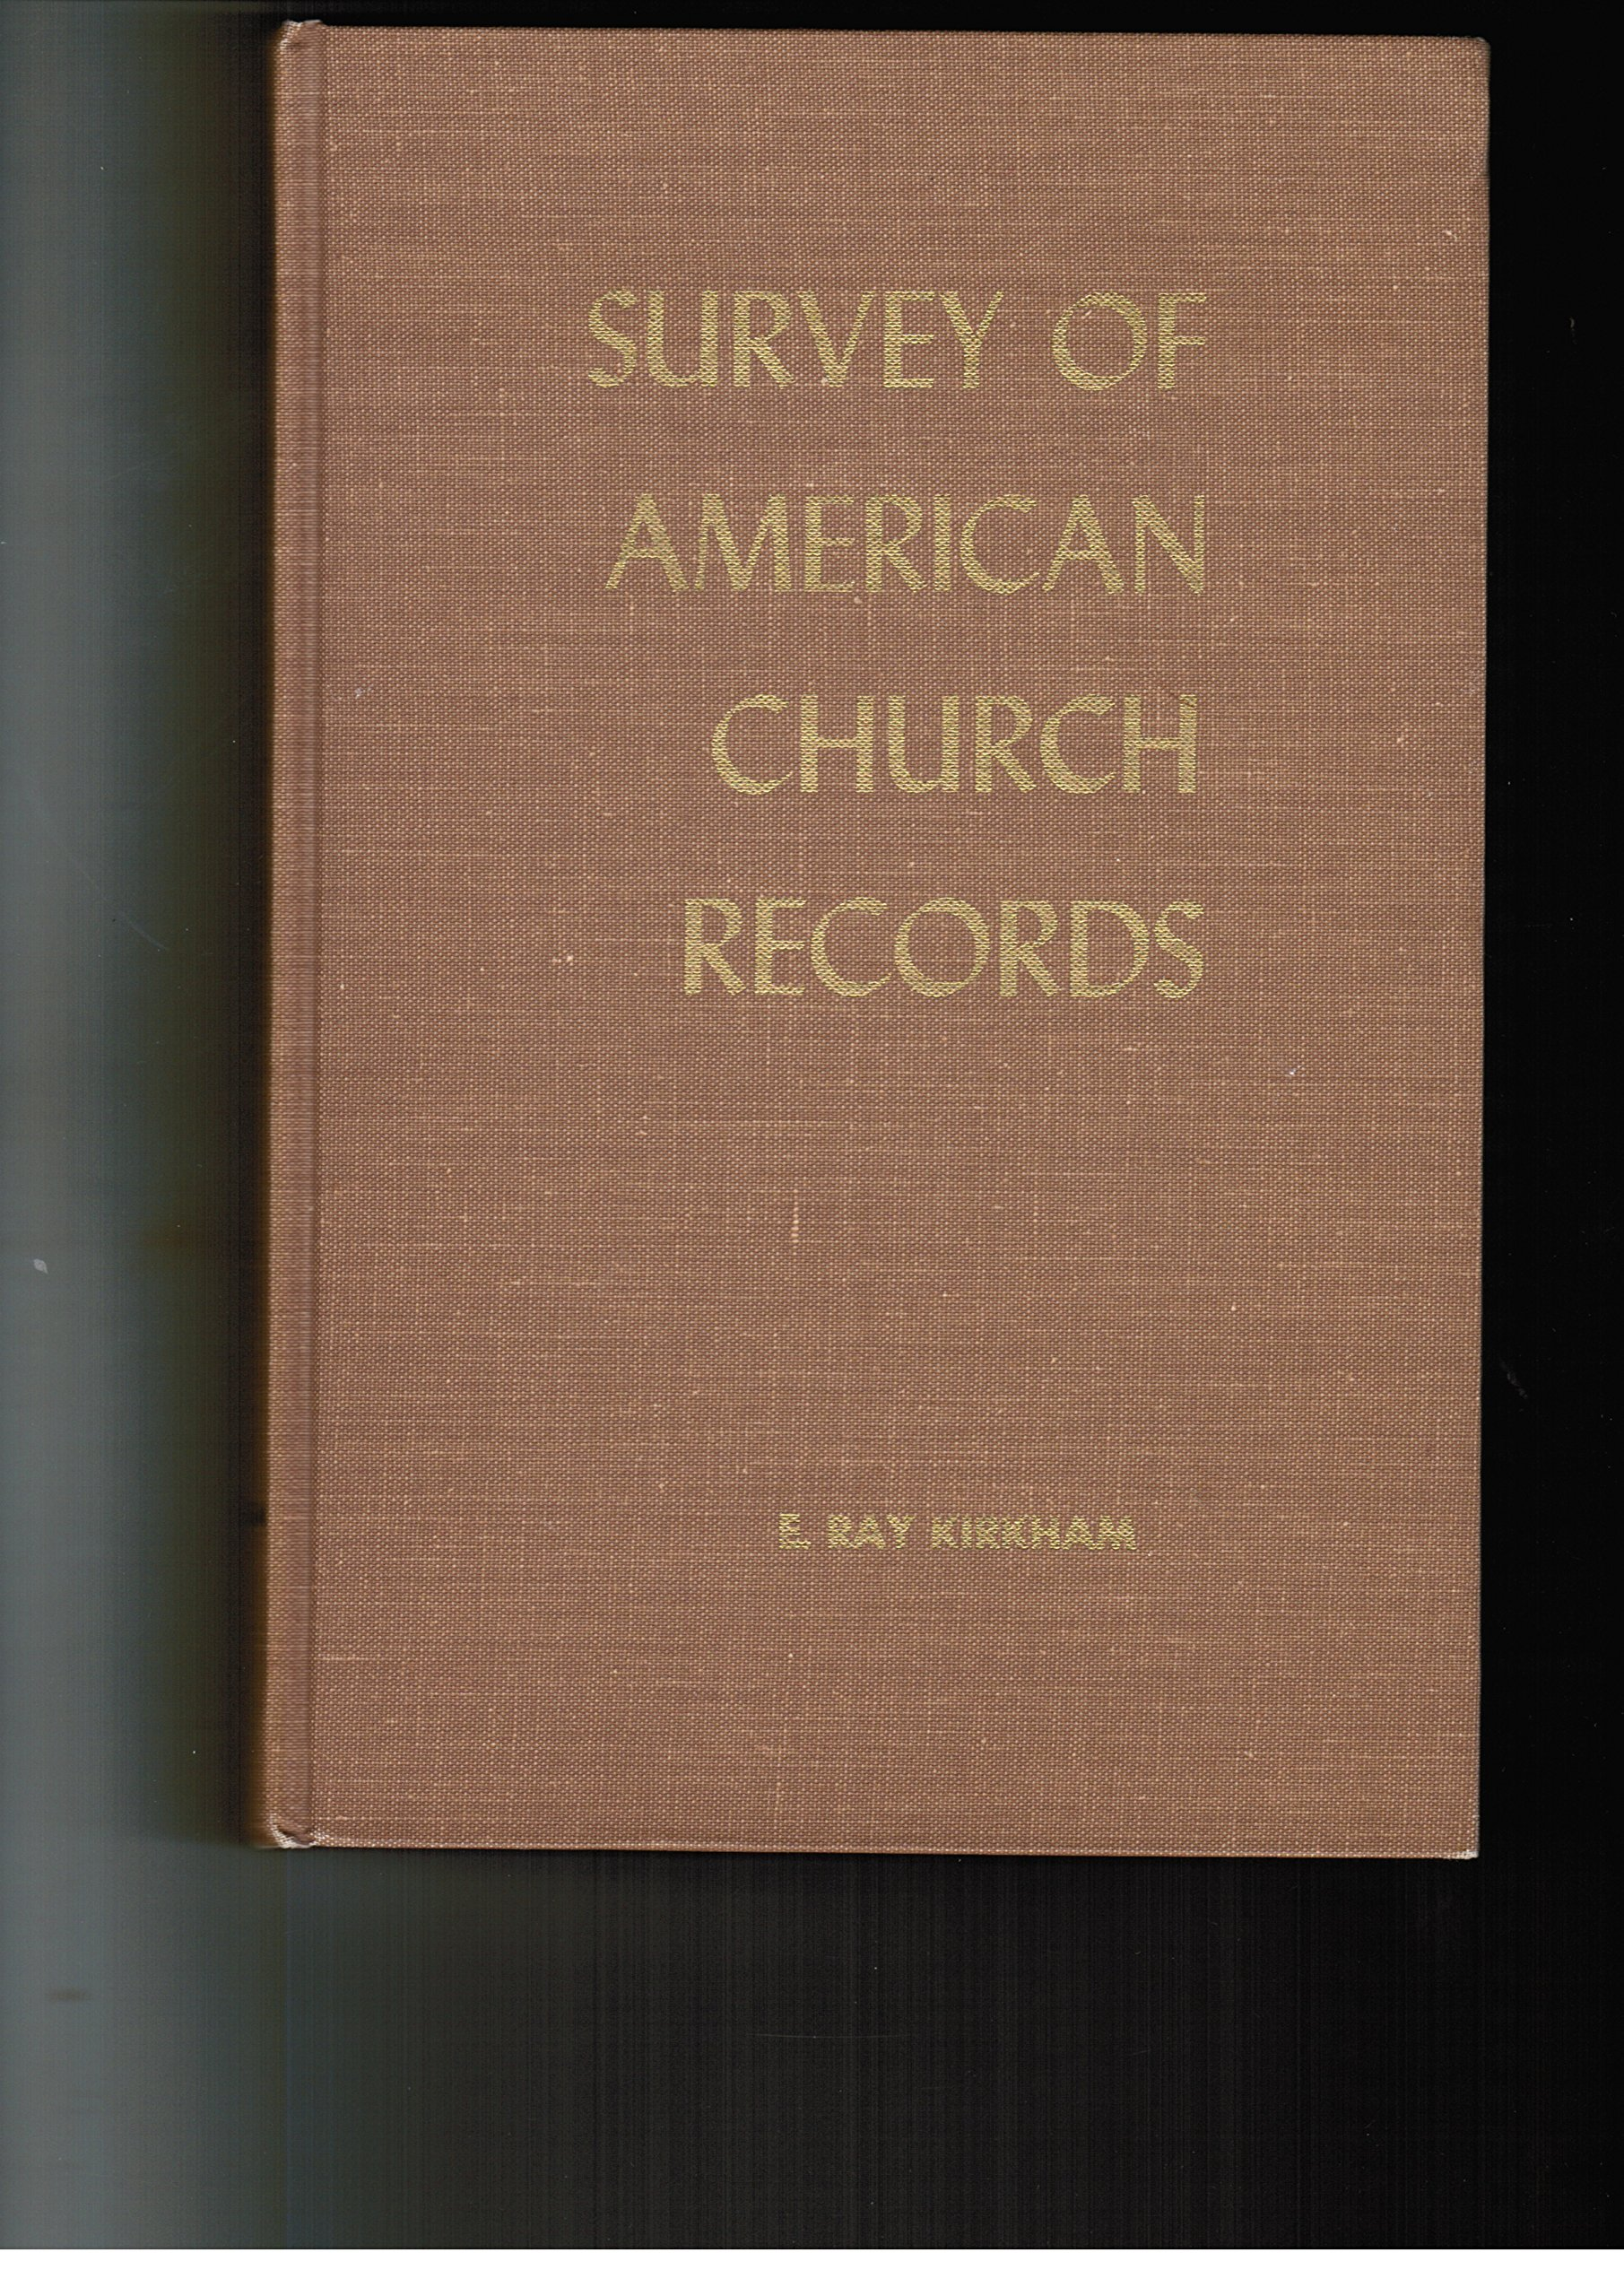 A survey of American church records, Kirkham, E. Kay